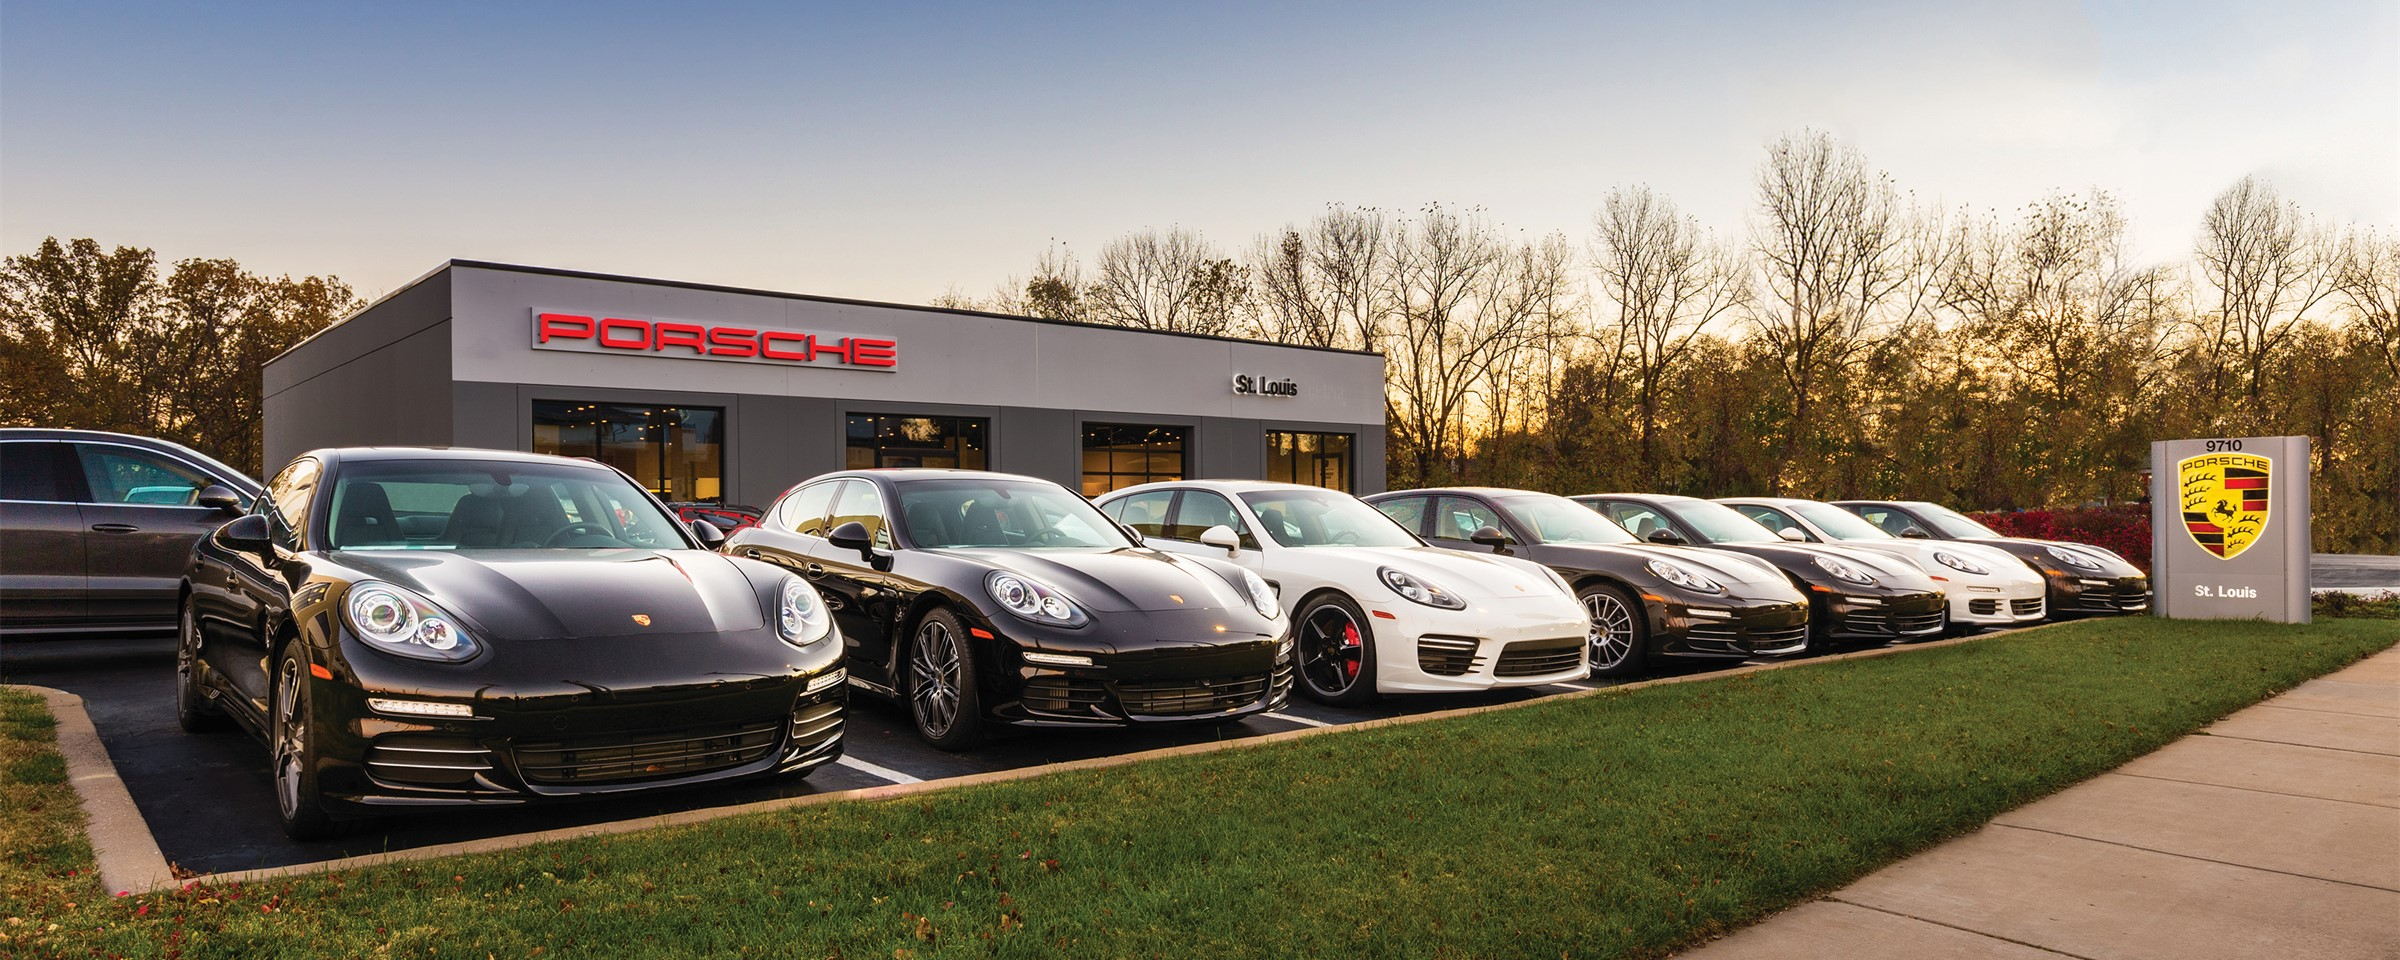 Porsche St Louis Named Top Dealer